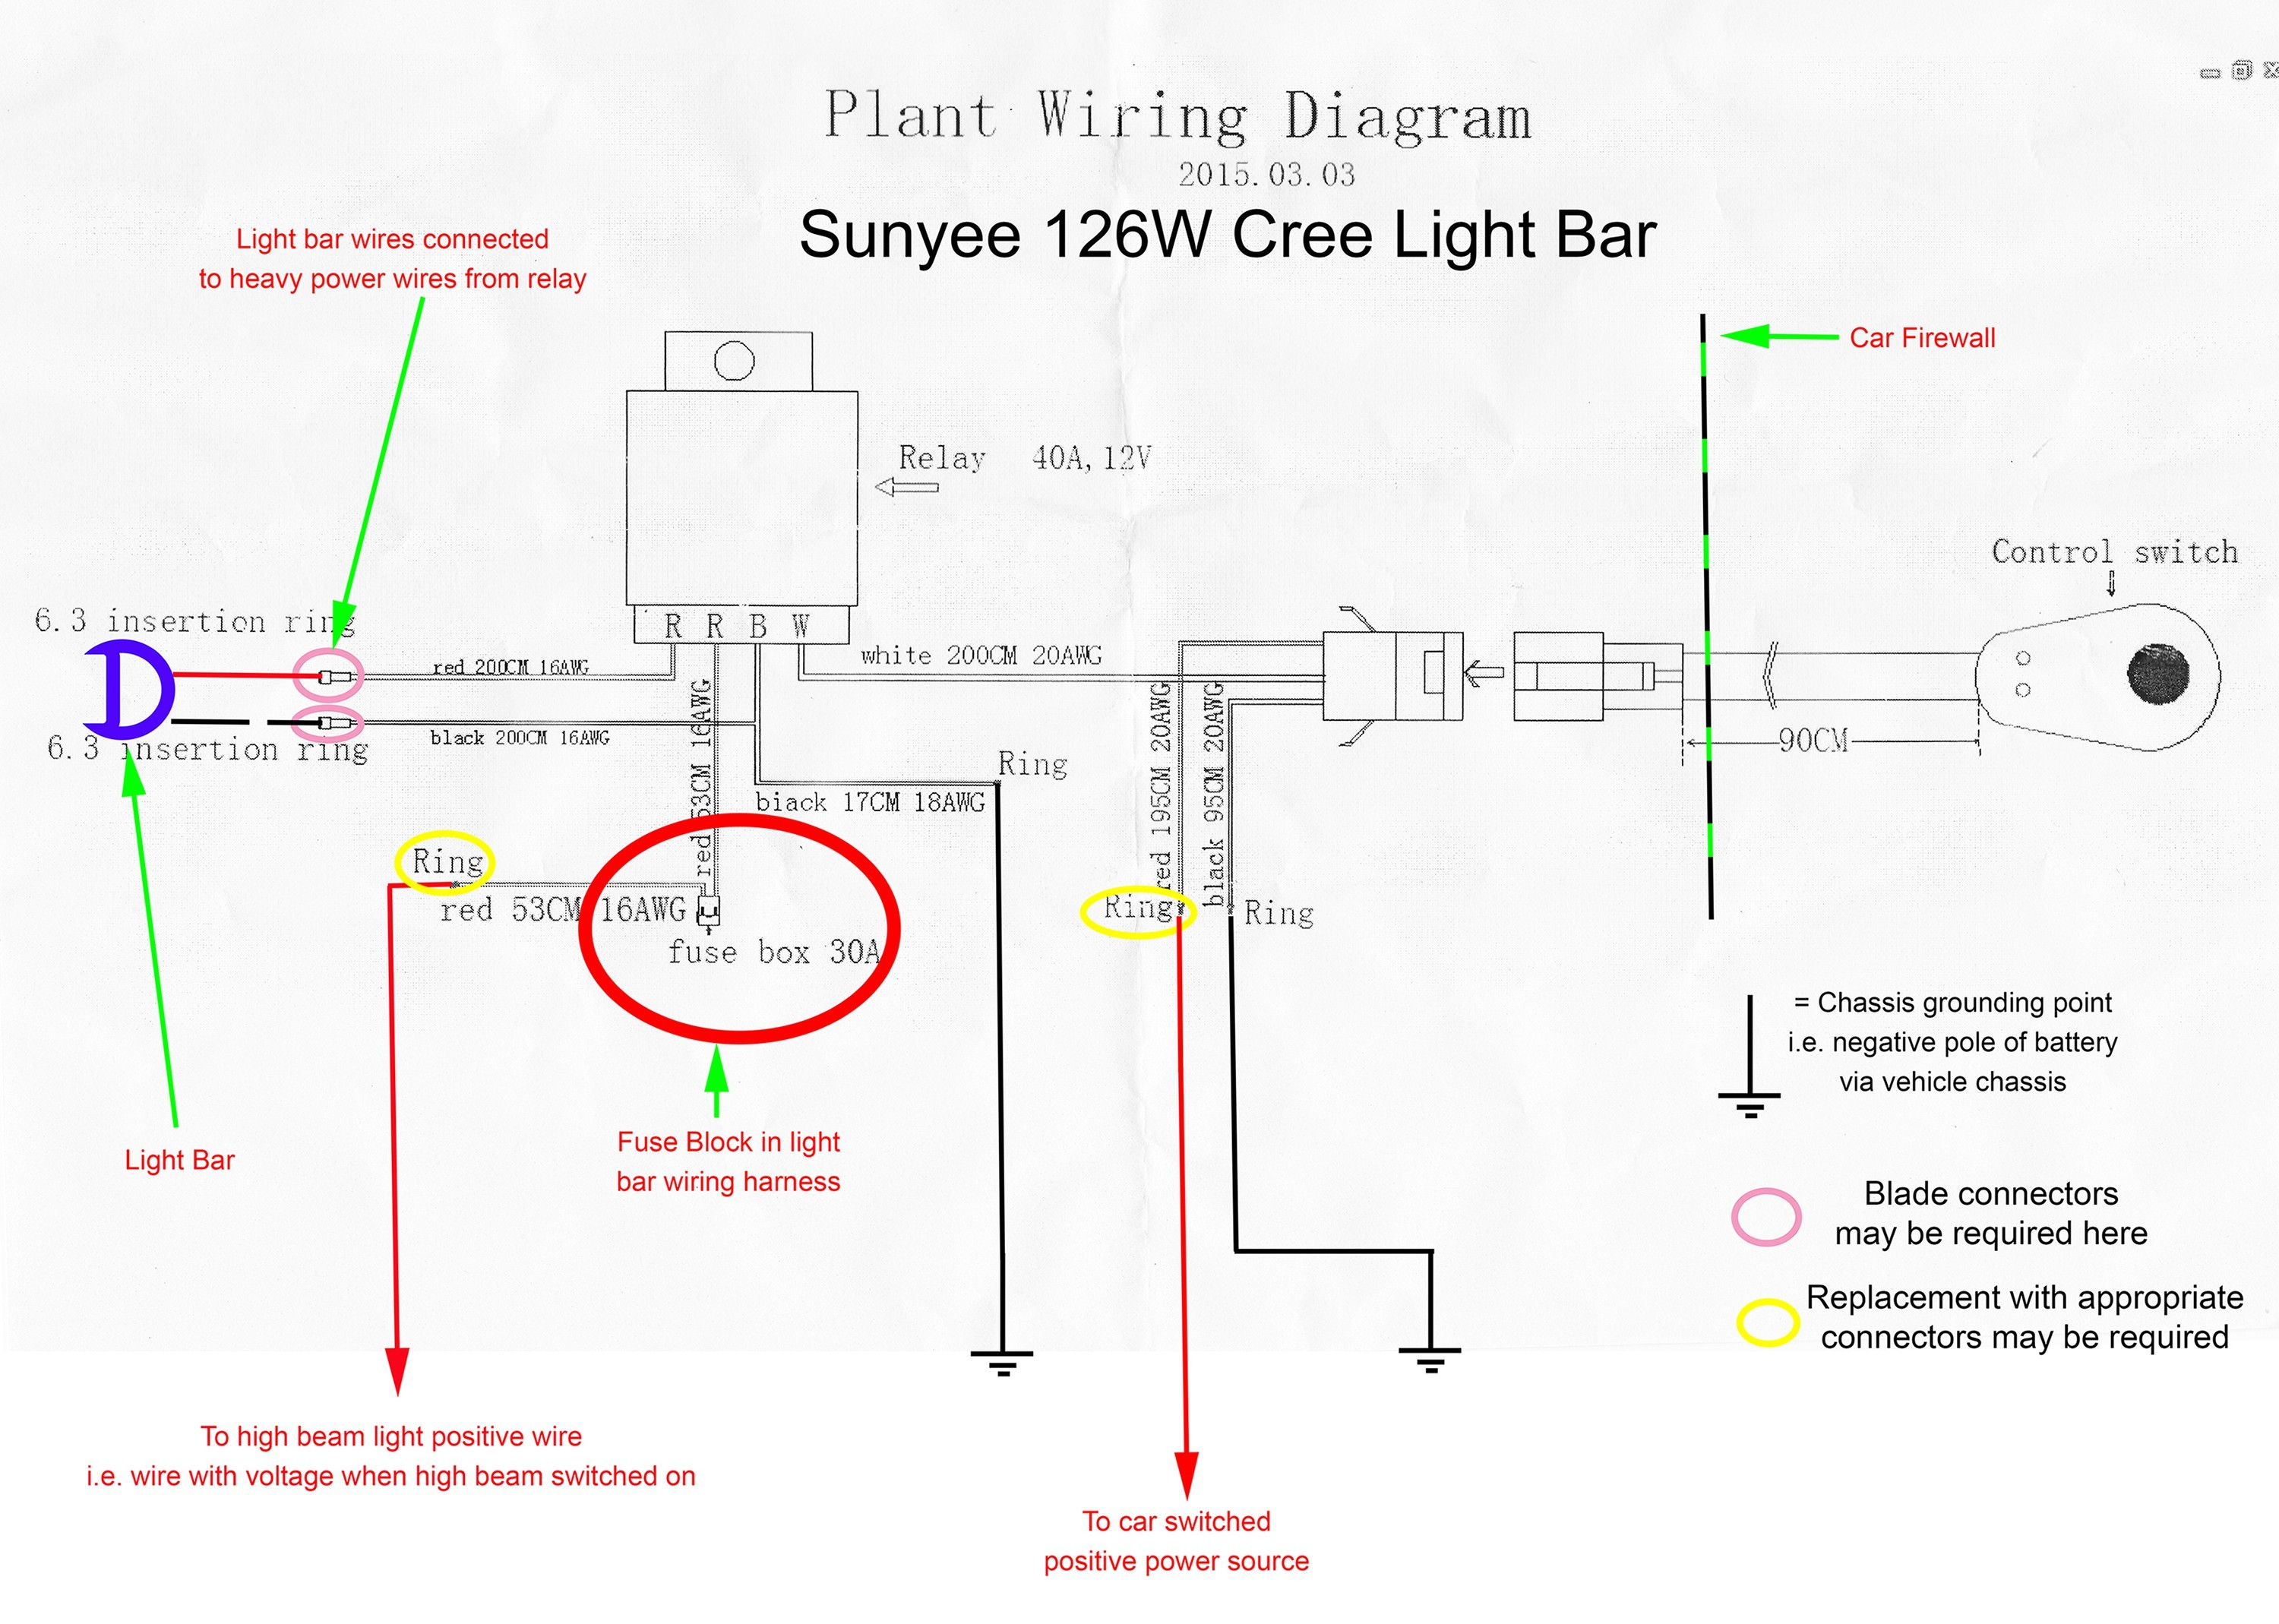 Install Sunyee Cree 126W Light Bar SG II Forester Page 3 Within Wiring Diagram